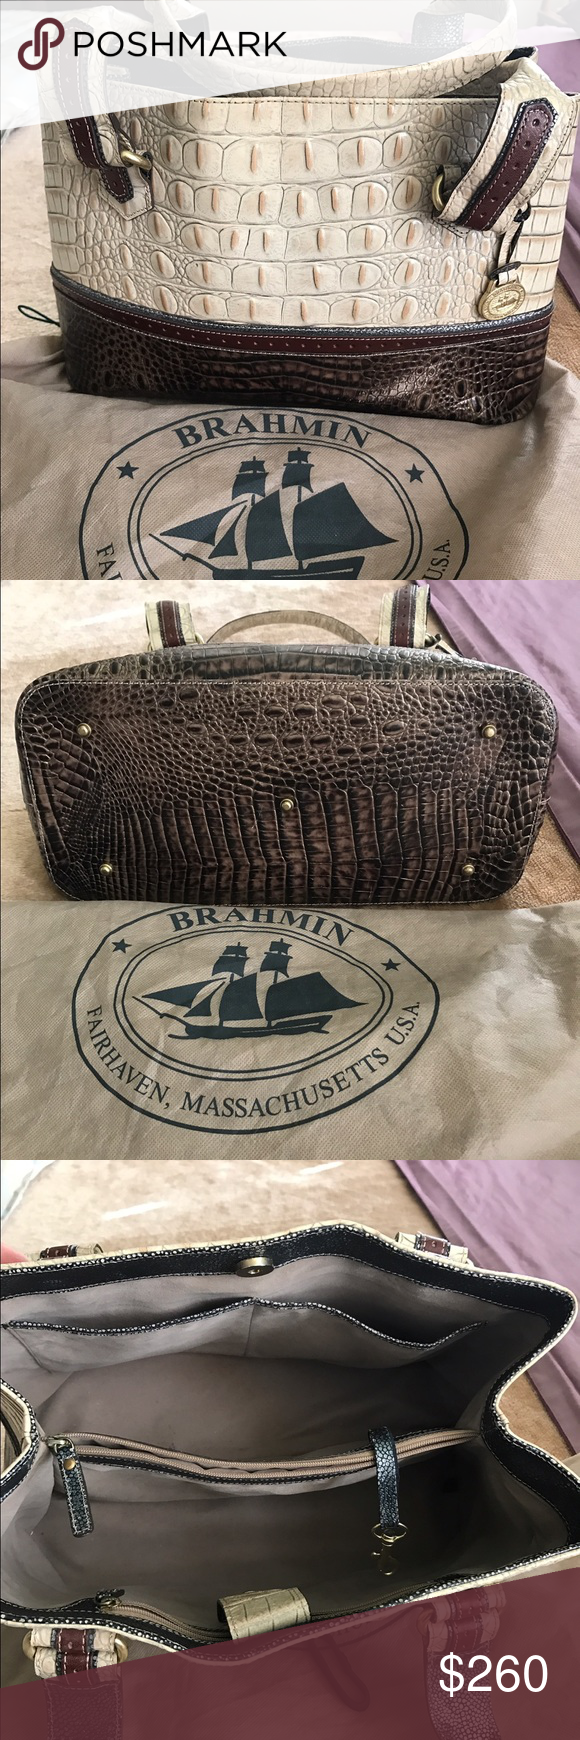 Brahmin handbag. Gorgeous with dust bag Dark brown and bone color great condition. Some pen marks inside. Otherwise interior of purse in excellent condition. Handles in great condition. Took care of this bag. Brahmin Bags Shoulder Bags